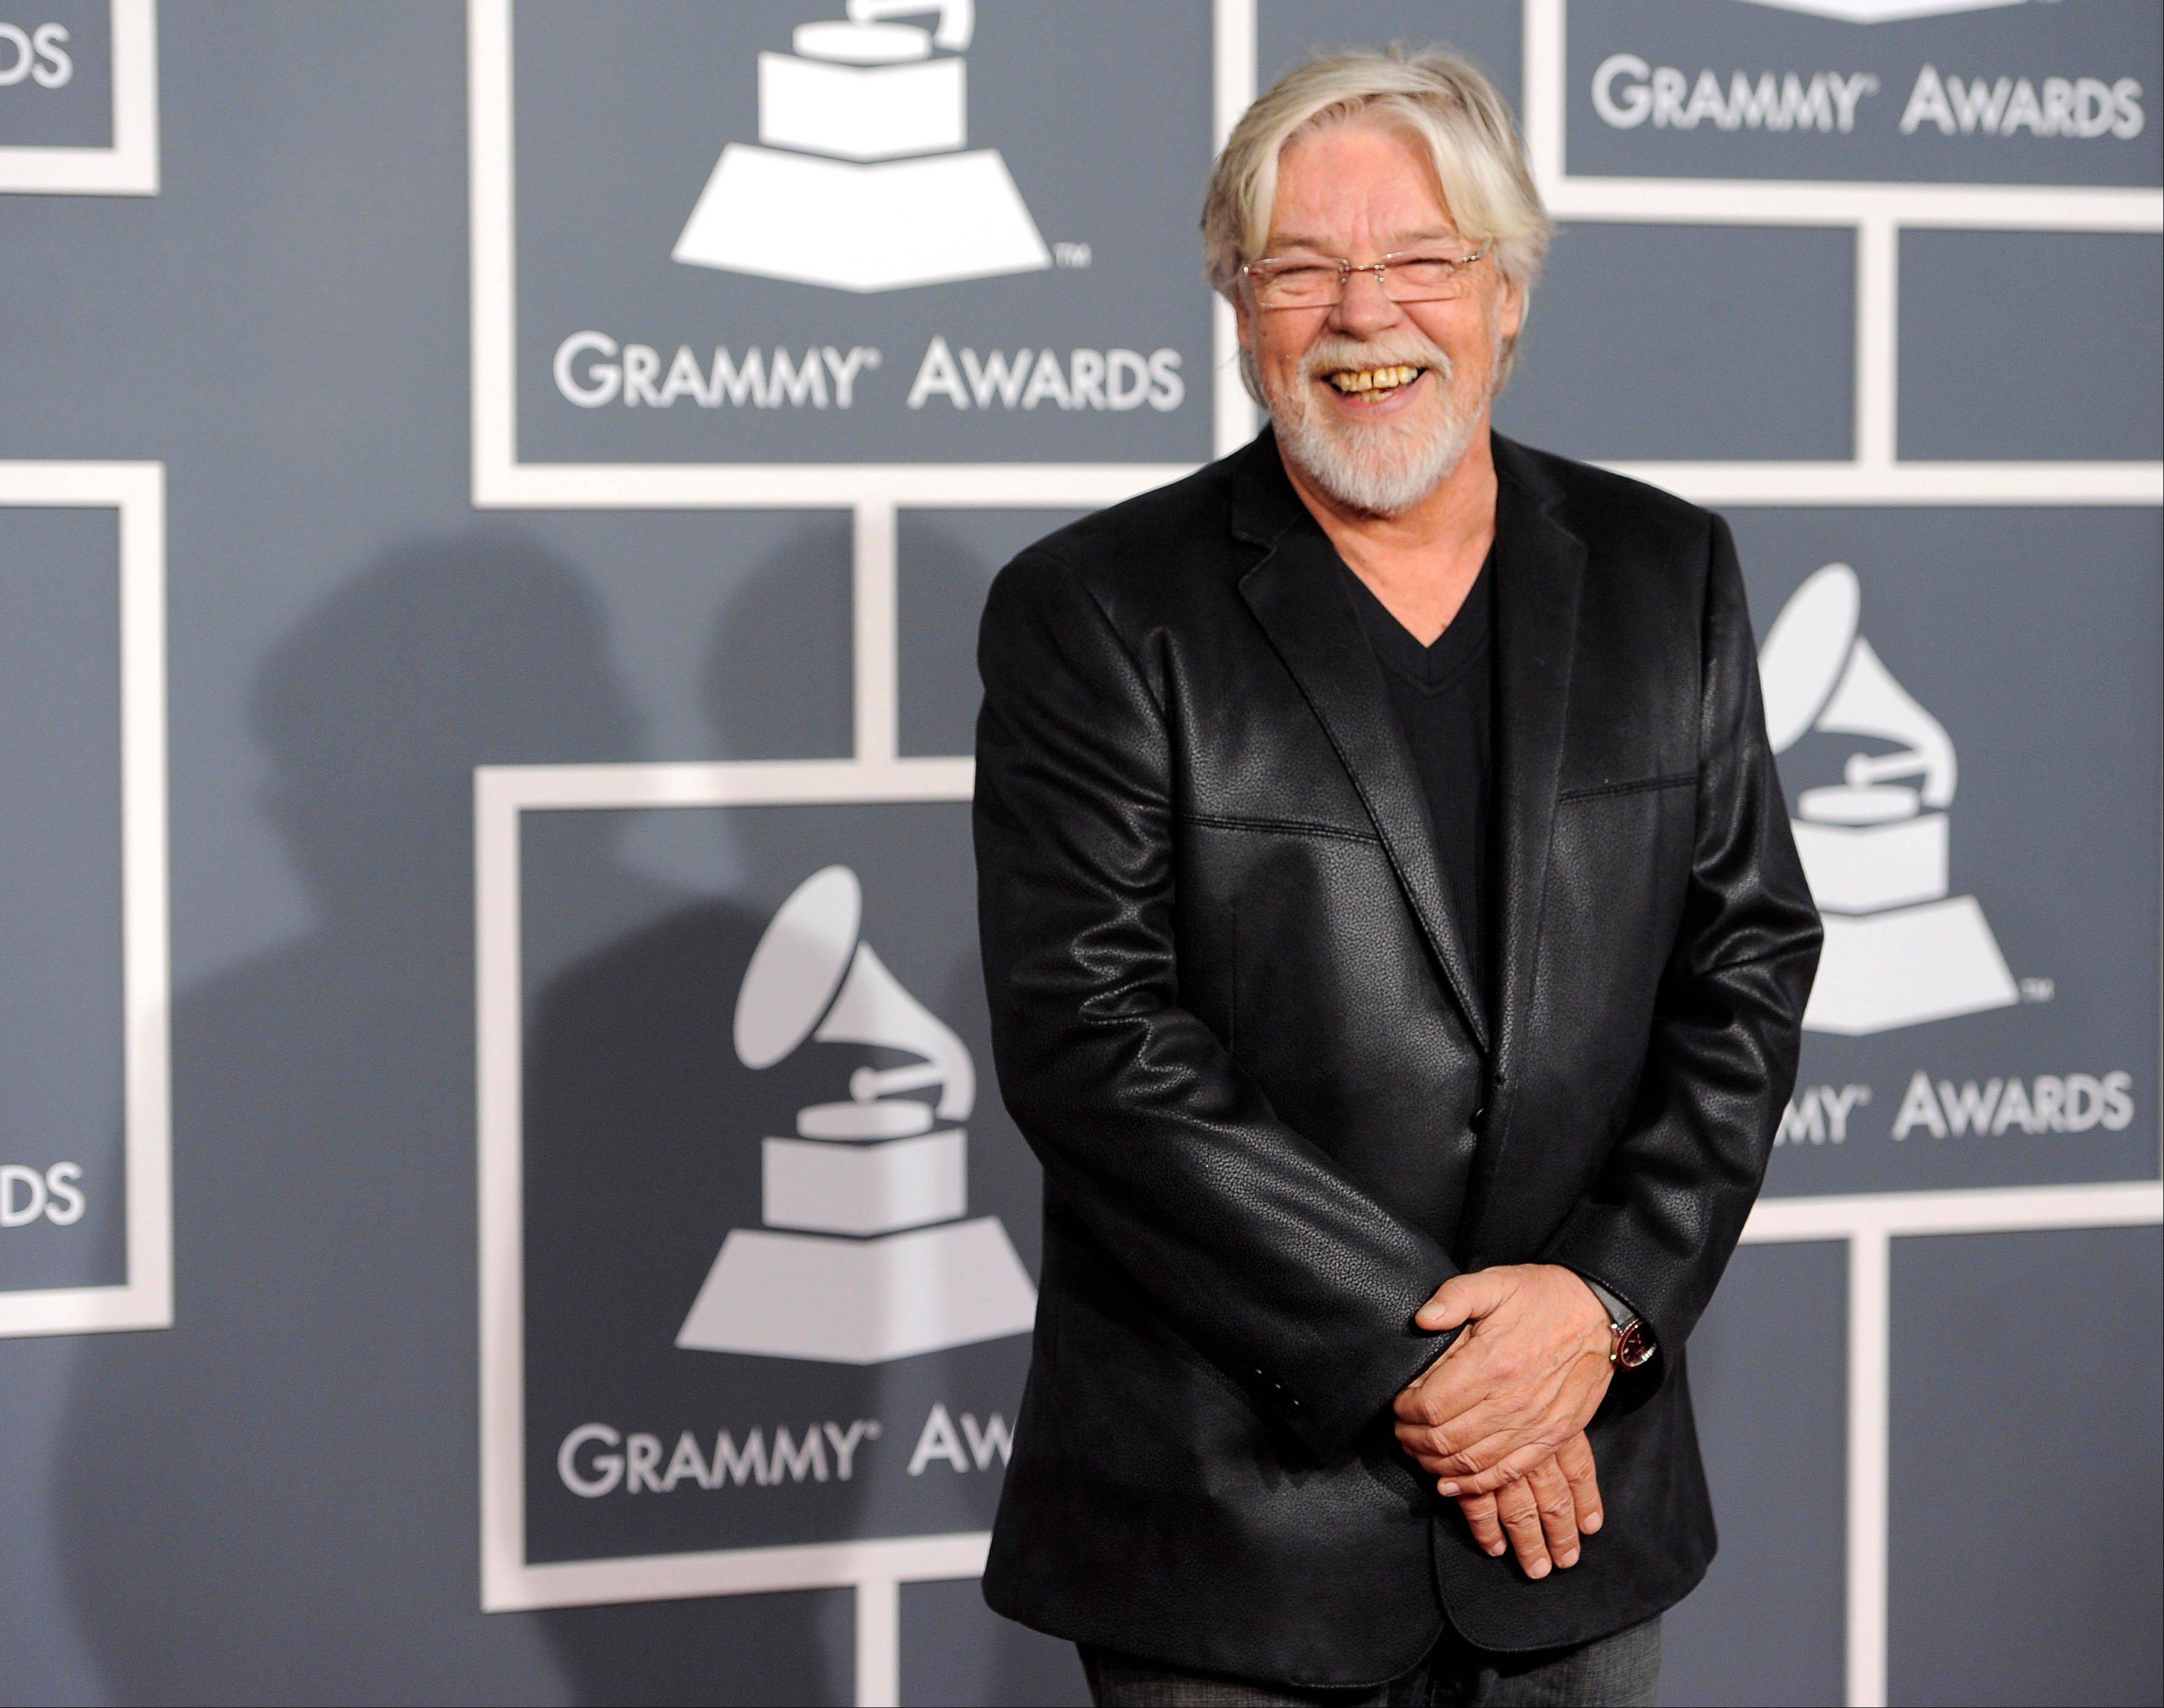 Bob Seger arrives Sunday at the 54th annual Grammy Awards in Los Angeles.